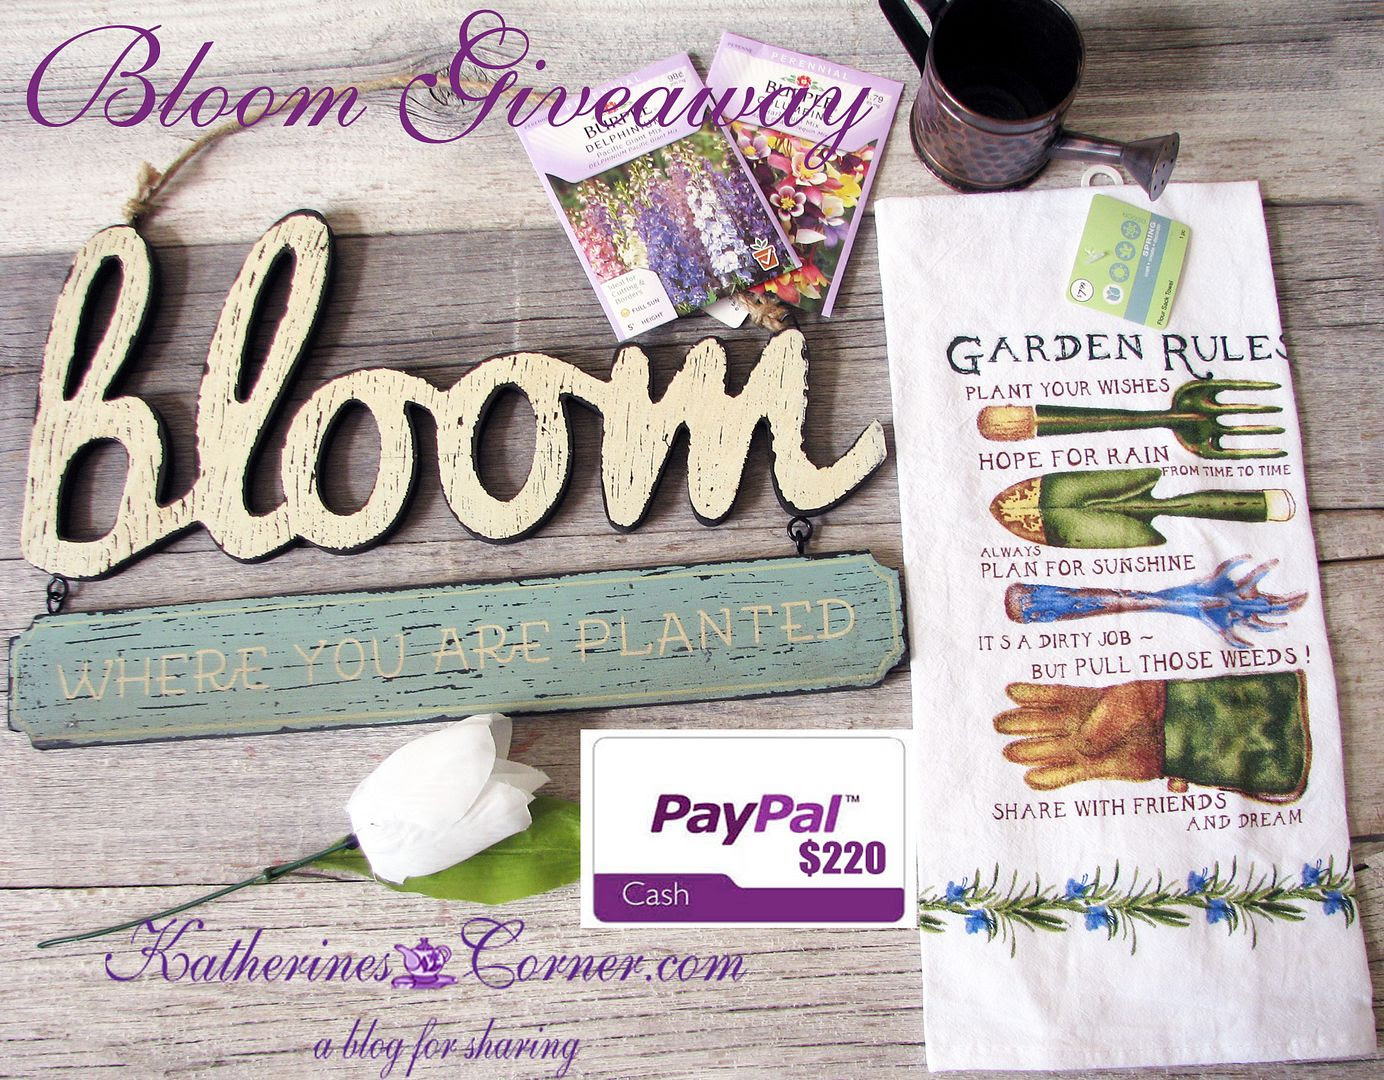 photo bloom- giveaway- katherines corner1_zpsy6eqsxyo.jpg